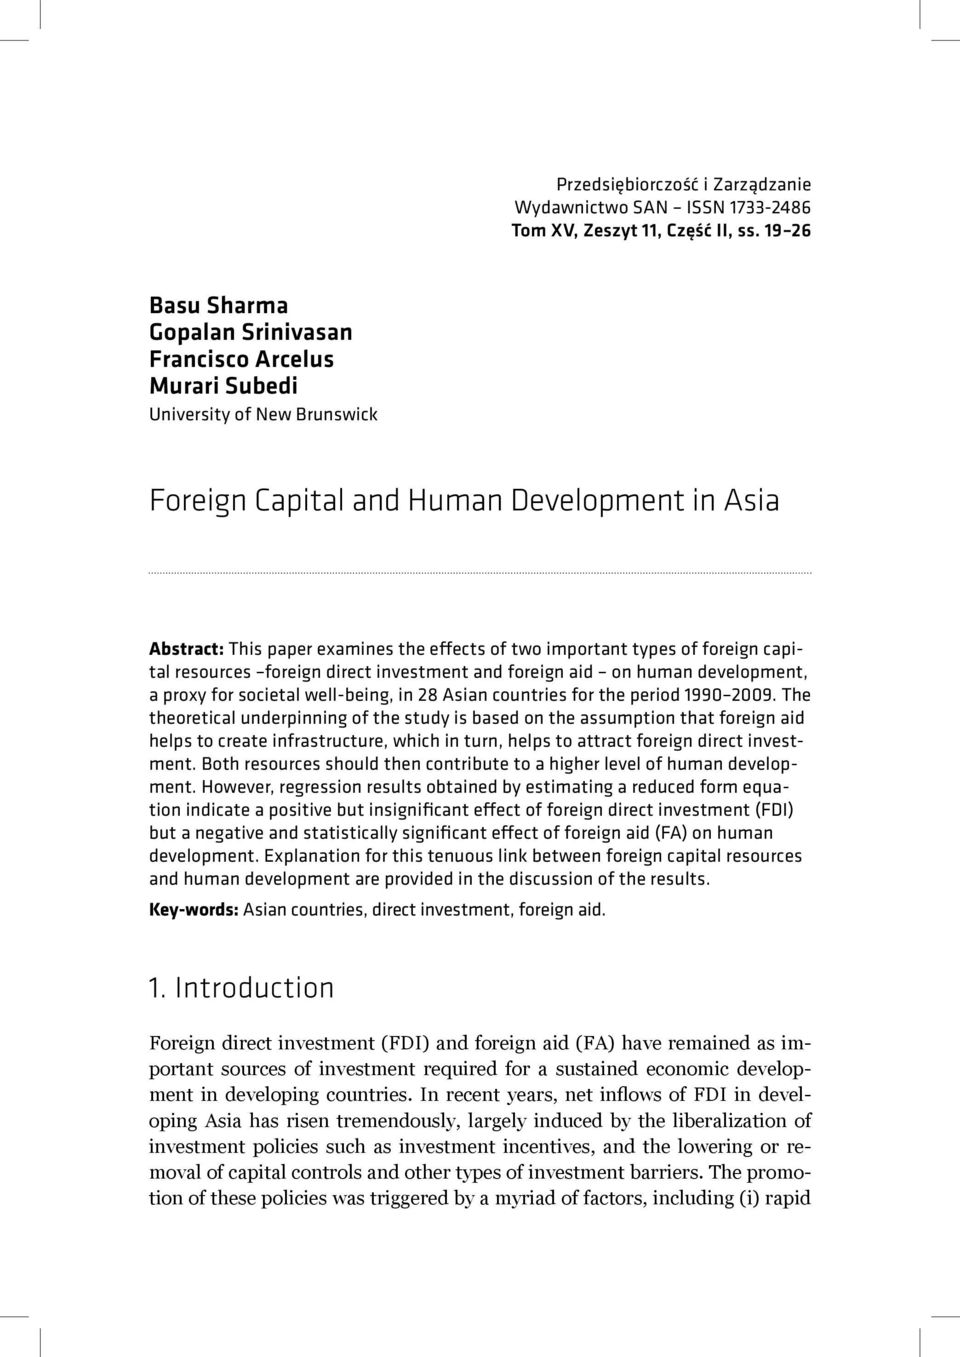 important types of foreign capital resources foreign direct investment and foreign aid on human development, a proxy for societal well-being, in 28 Asian countries for the period 1990 2009.